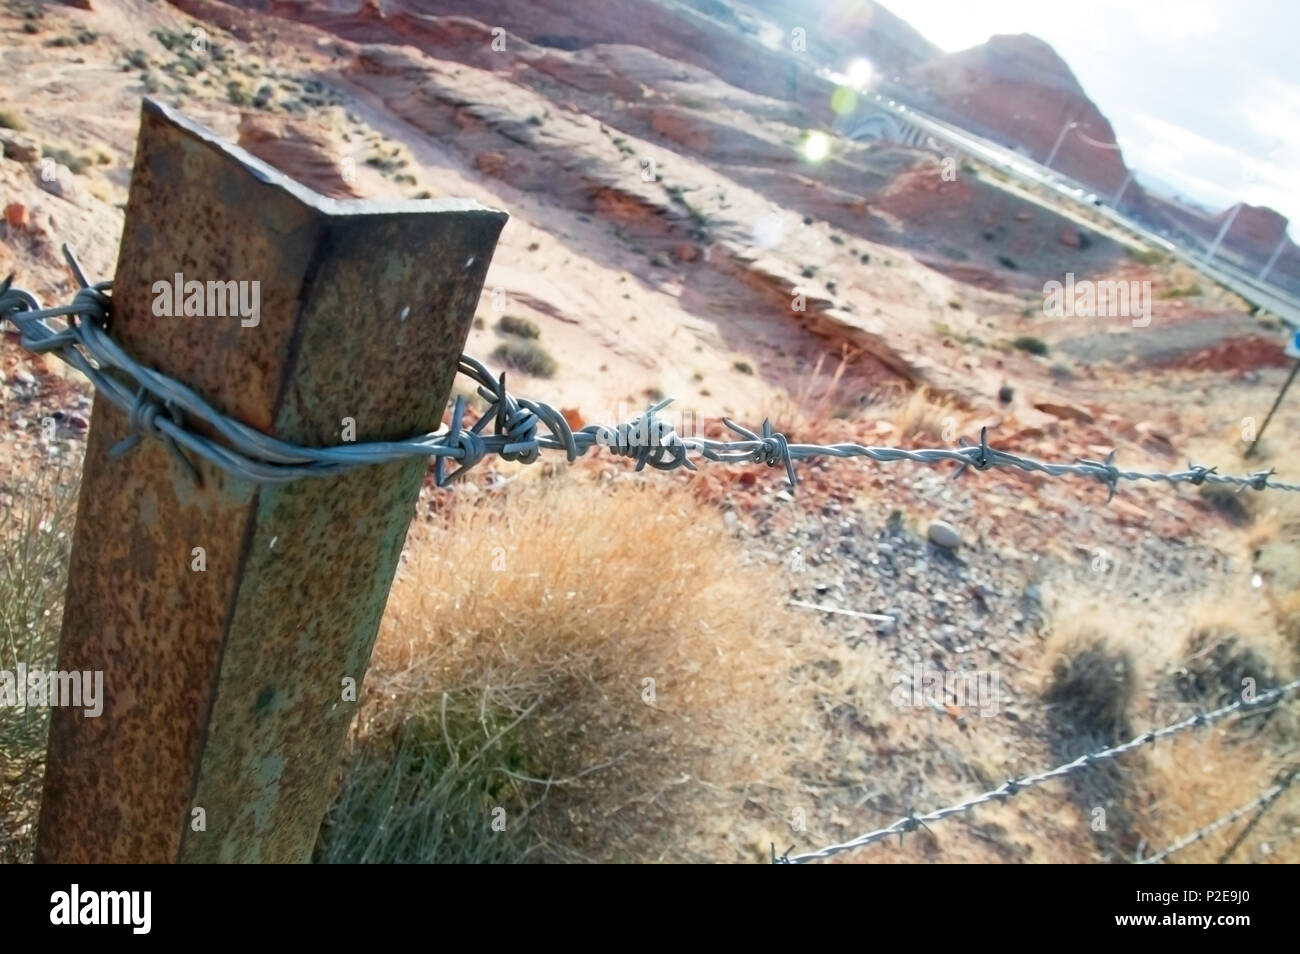 A barbed wire fence in the desert at sunset. - Stock Image